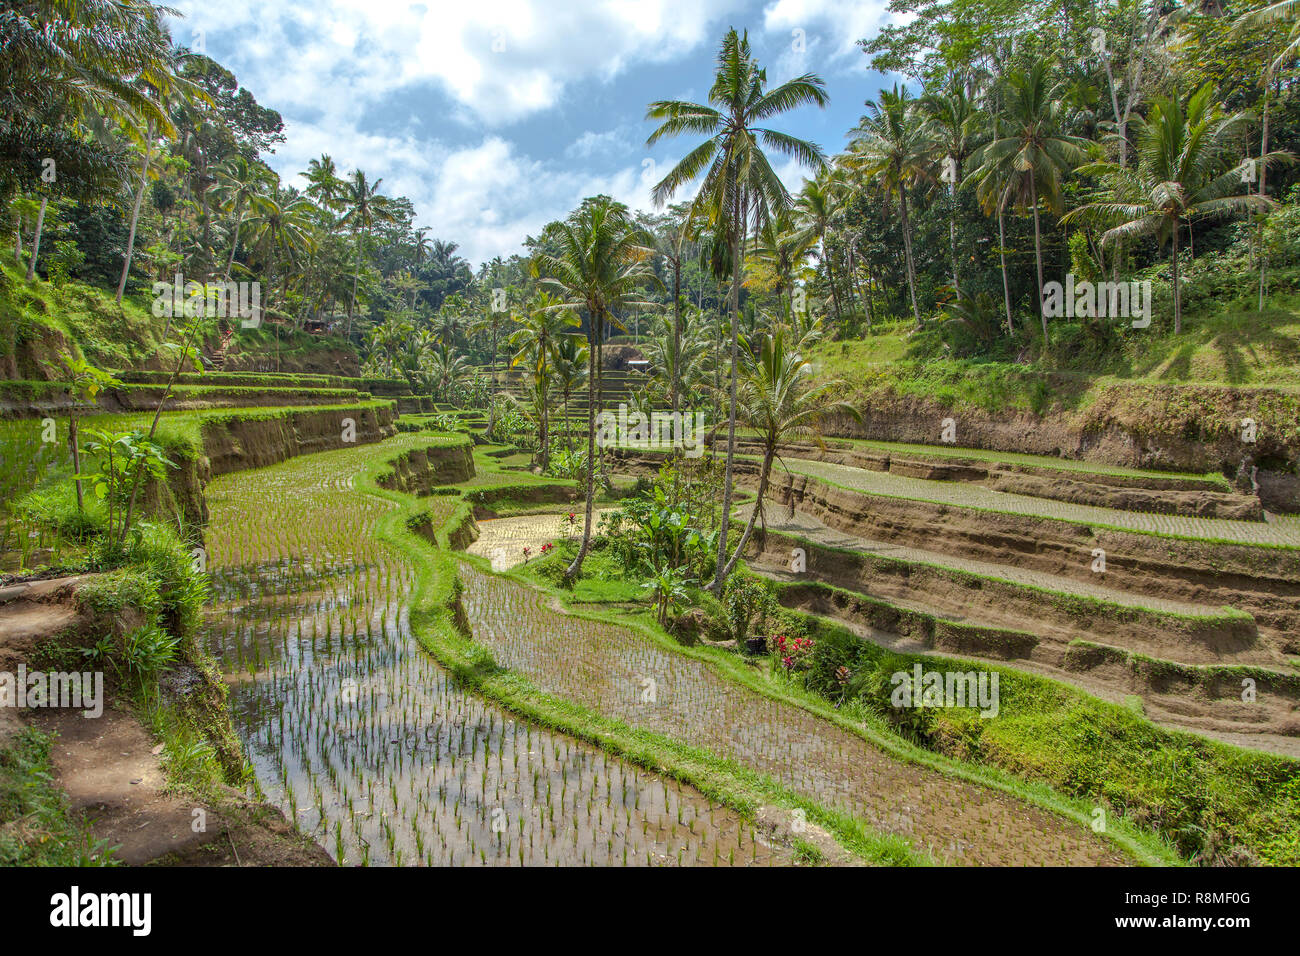 A Tegalalang rice terrace views of Bali in Indonesia. - Stock Image